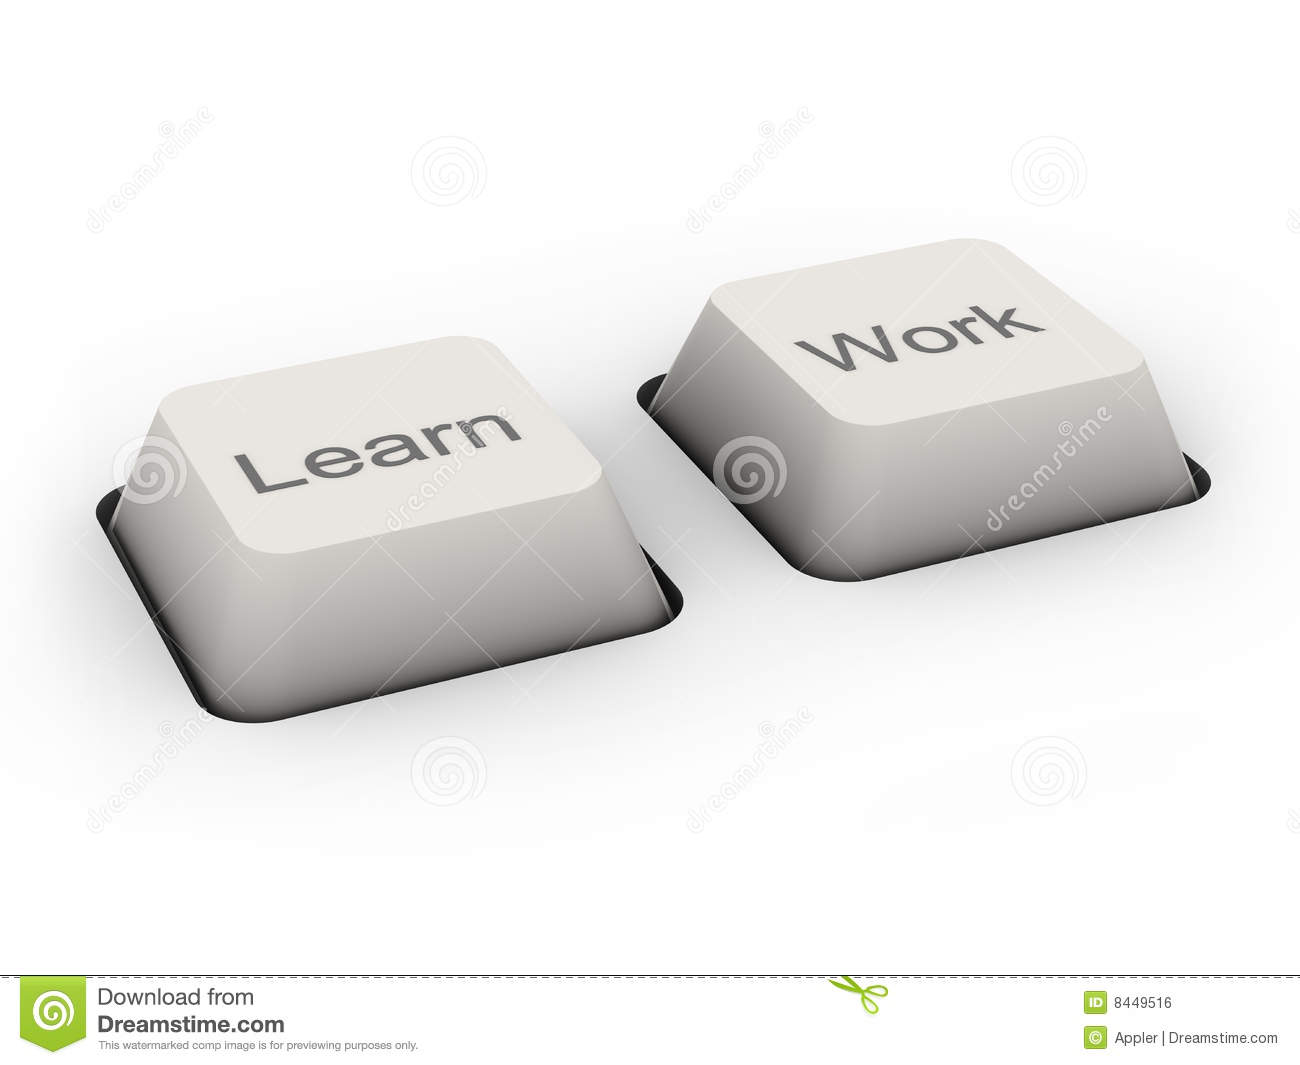 work and learn: